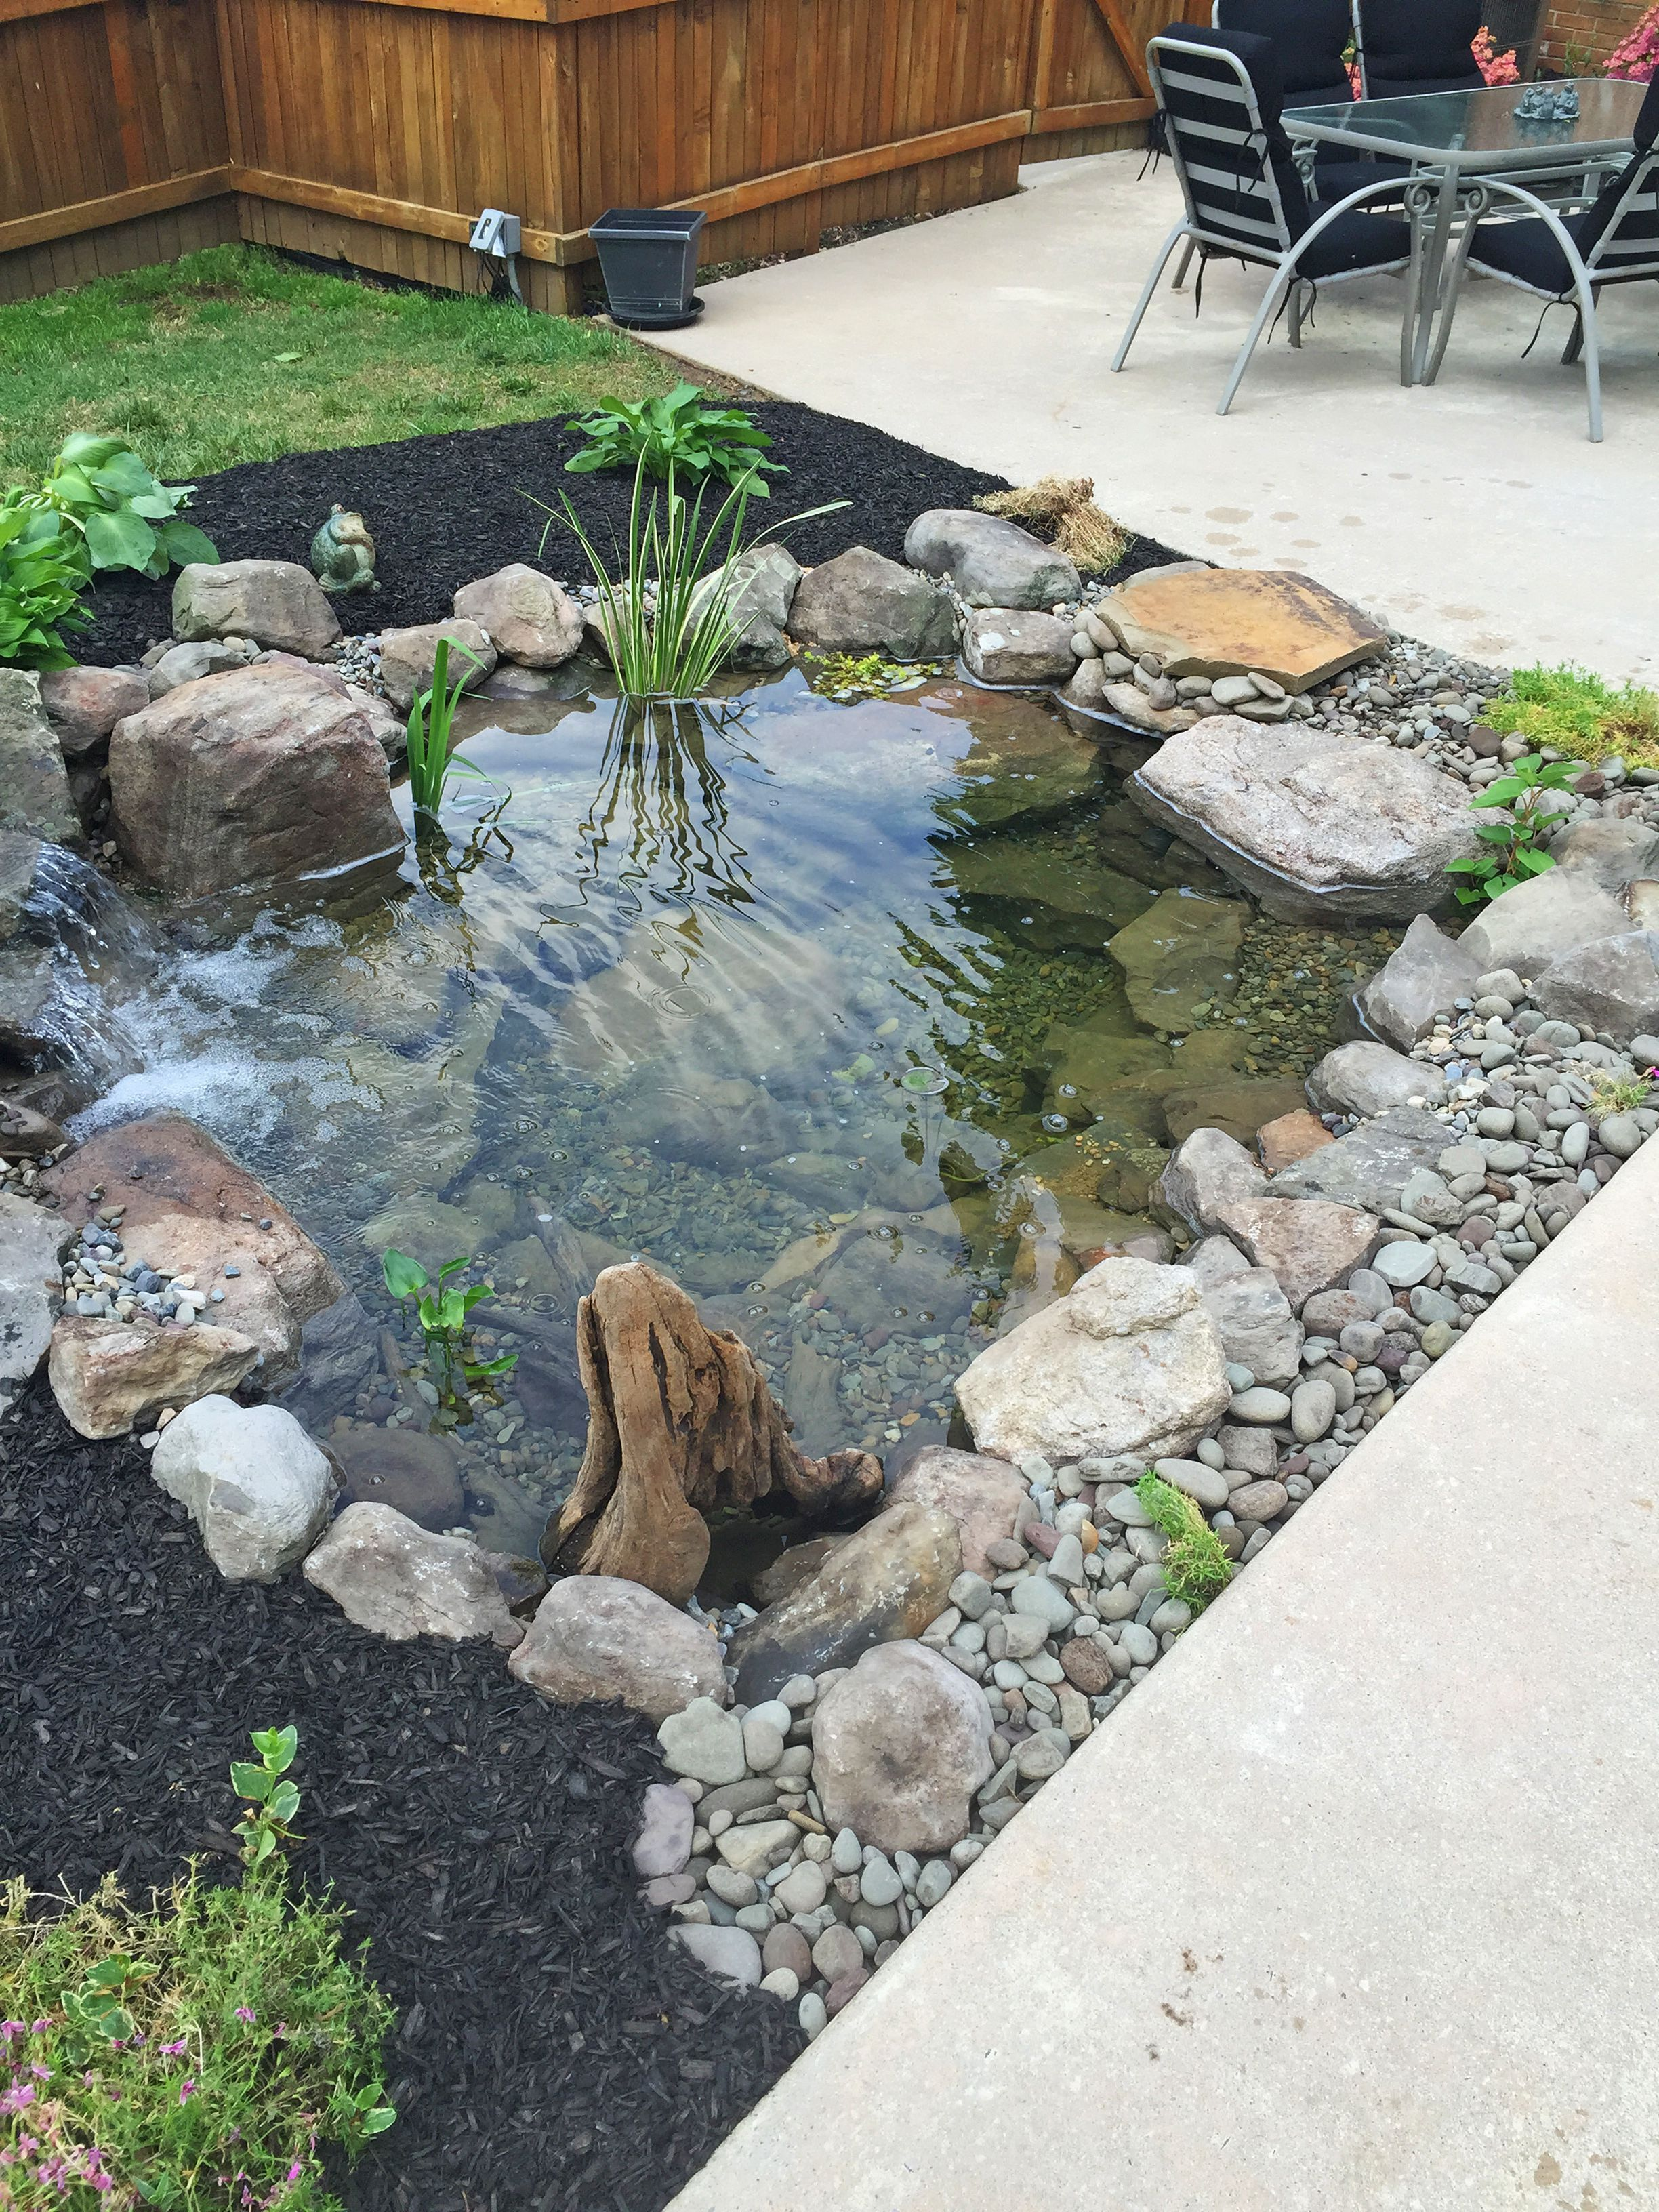 50 Awesome Diy Koi Pond Plans You Can Create To Accent Your Backyard Koi Pond Designs Design No 1 Garden Pond Design Ponds For Small Gardens Ponds Backyard